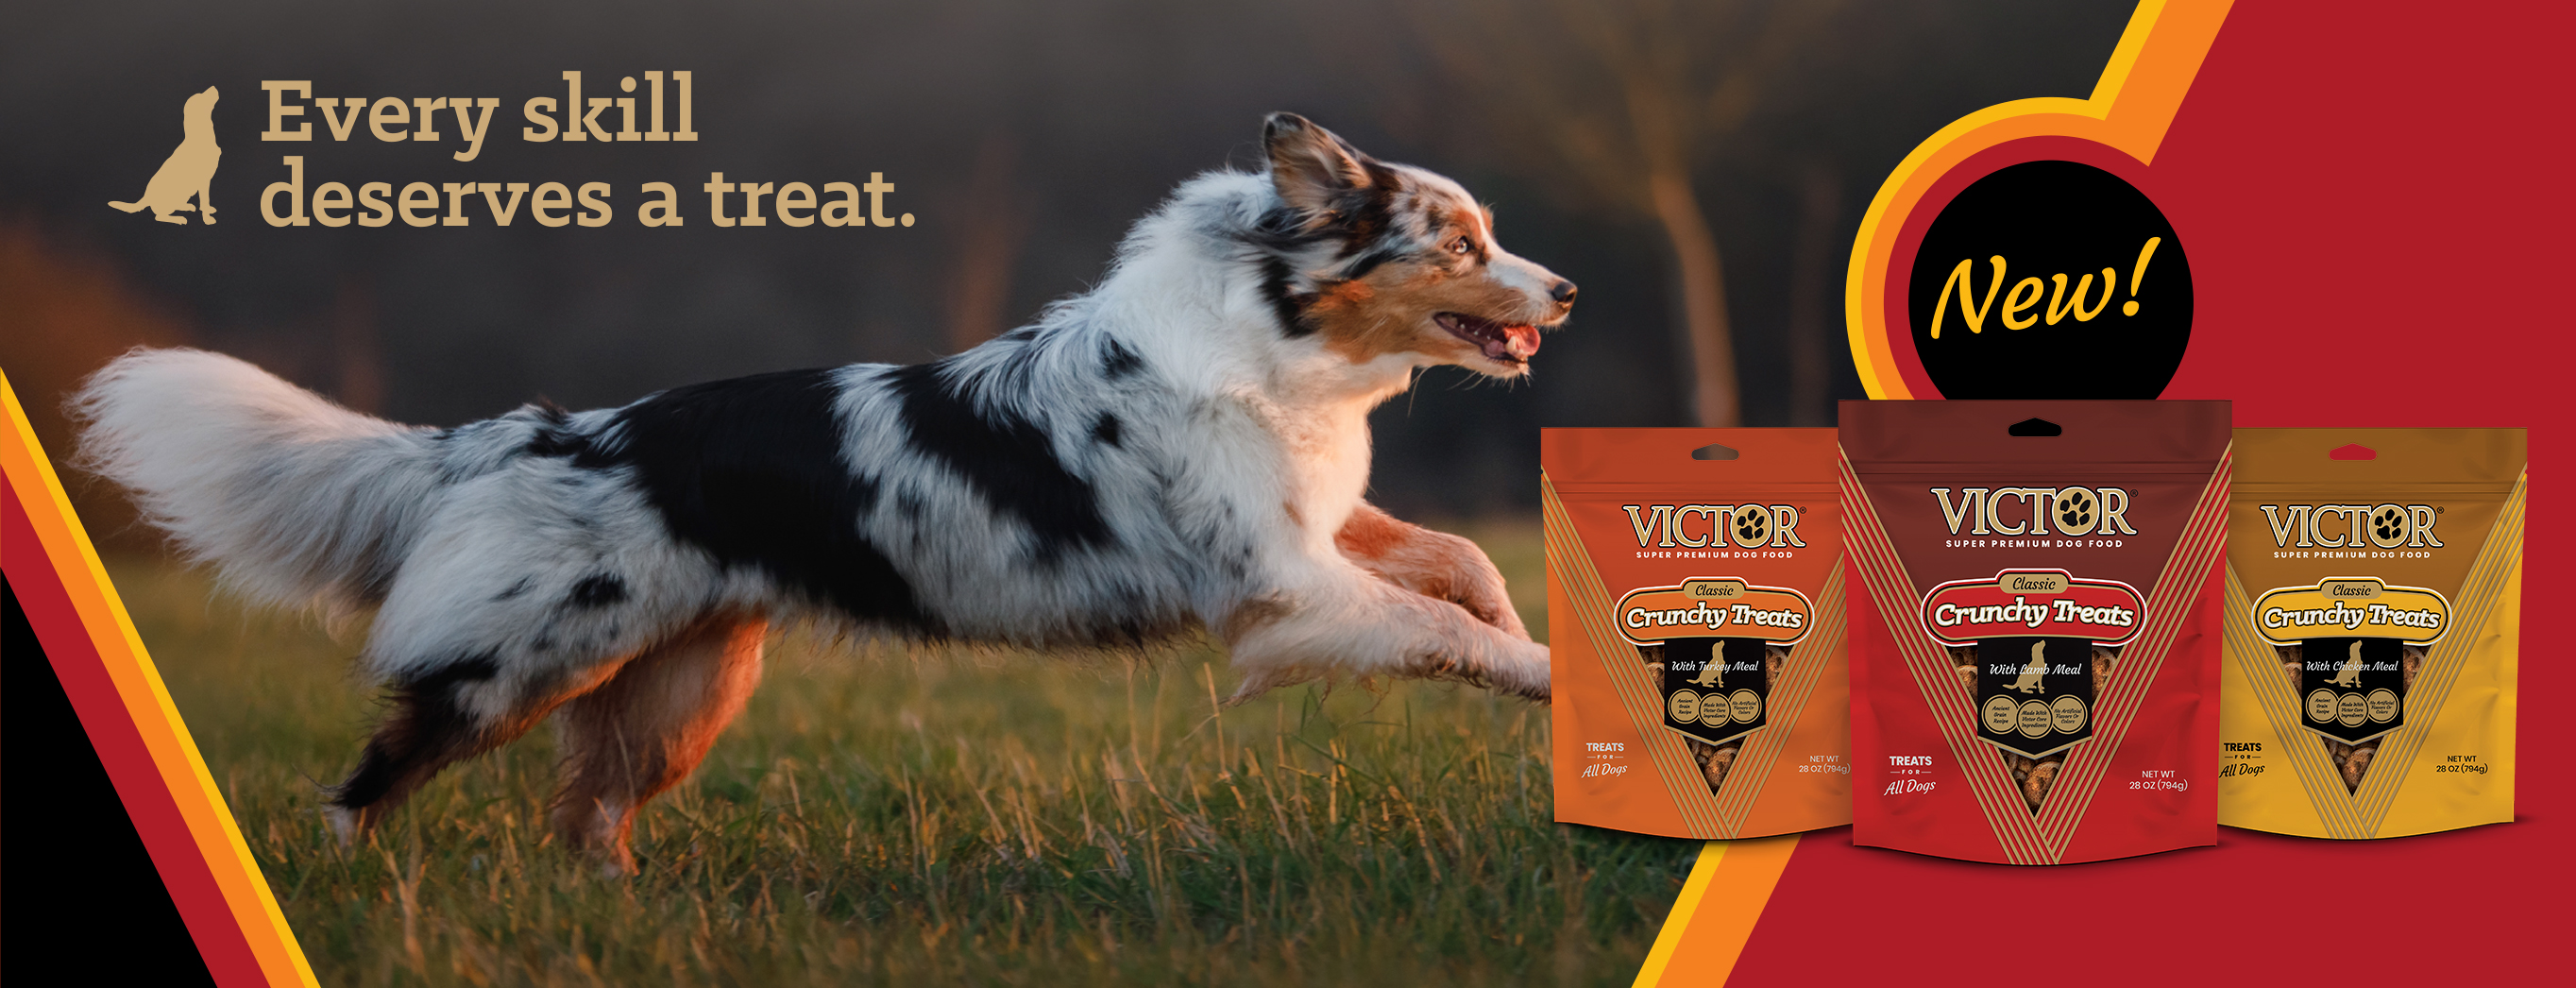 News: Latest about Our Company and Products   VICTOR Pet Food